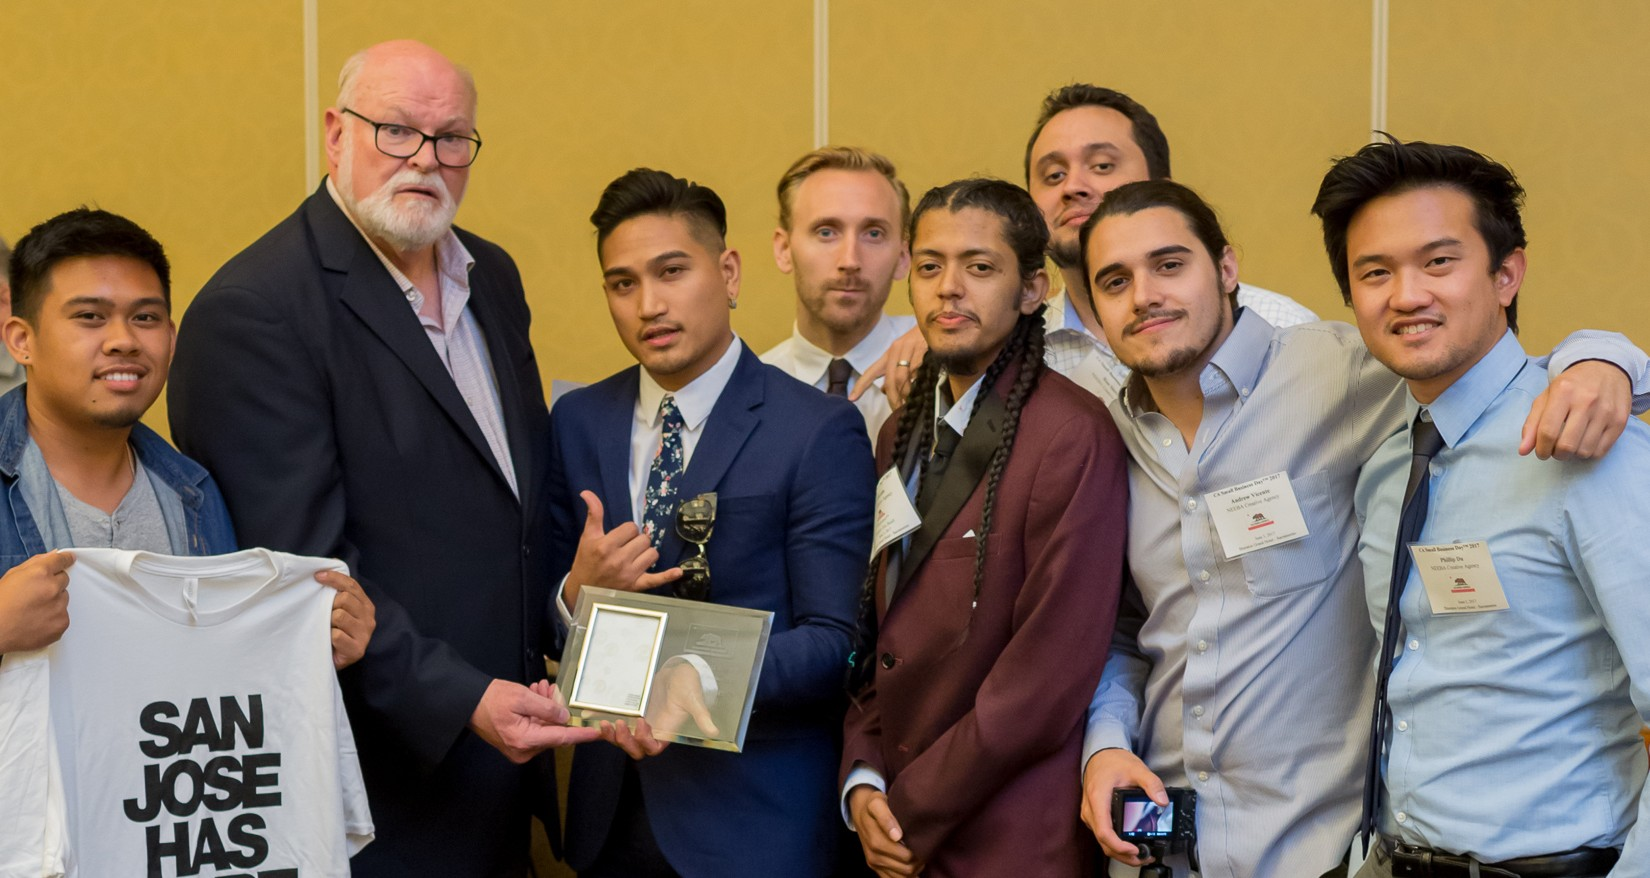 State Senator Jim Beall, second from left, presented NEEBA with a Small Business of the Year award the company's work in telling community stories through video and production.